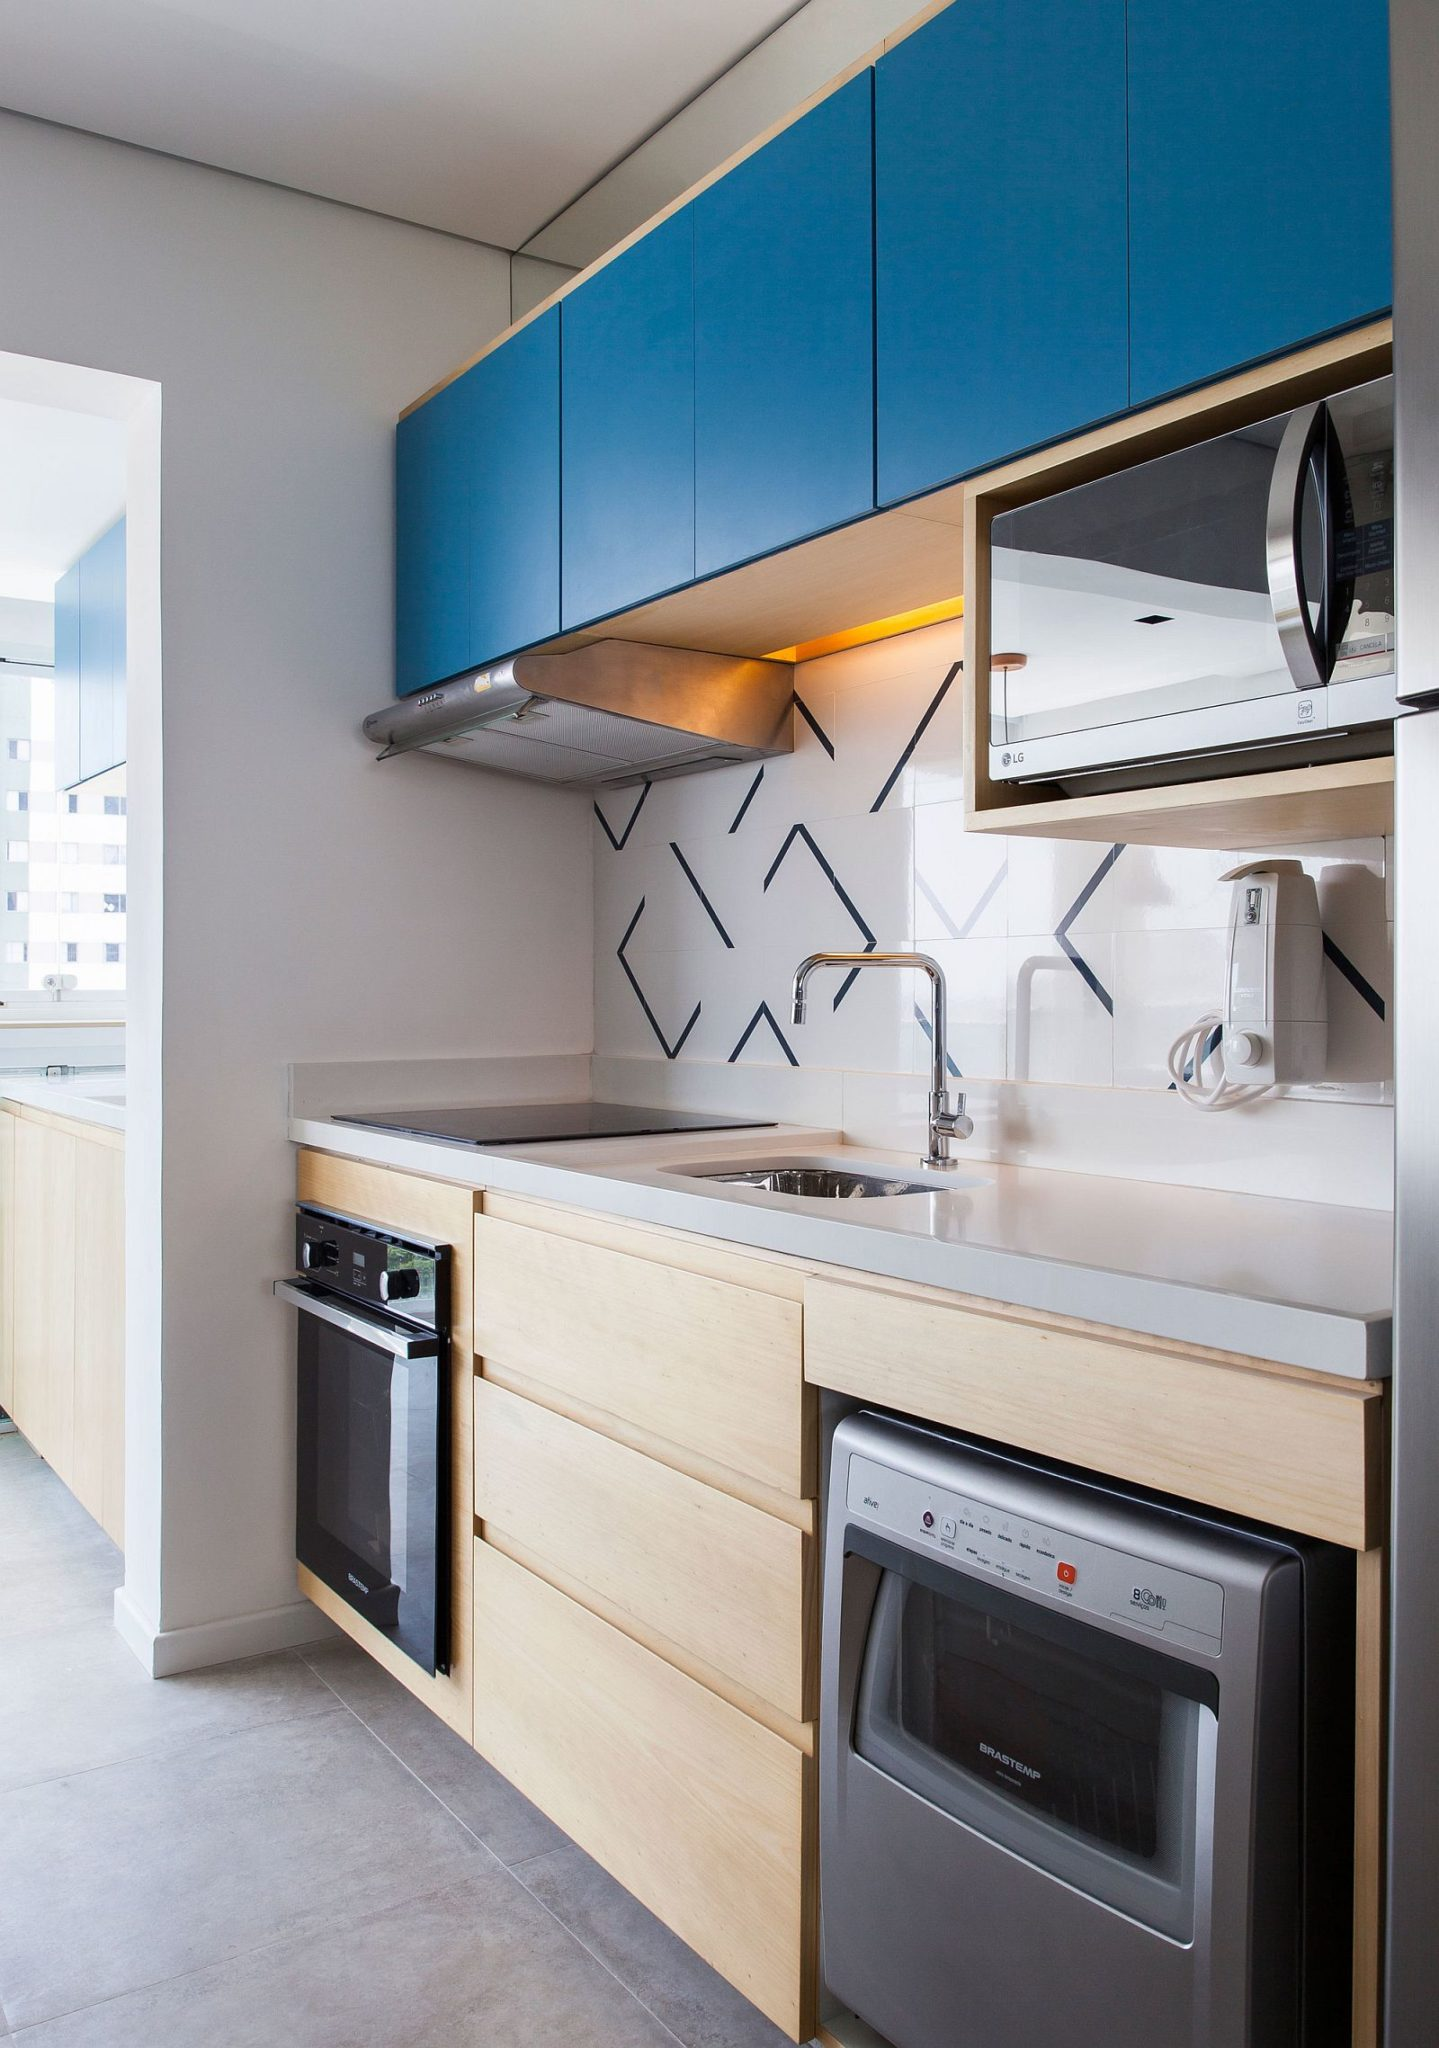 Tiny kitchen with bright blue top cabinets